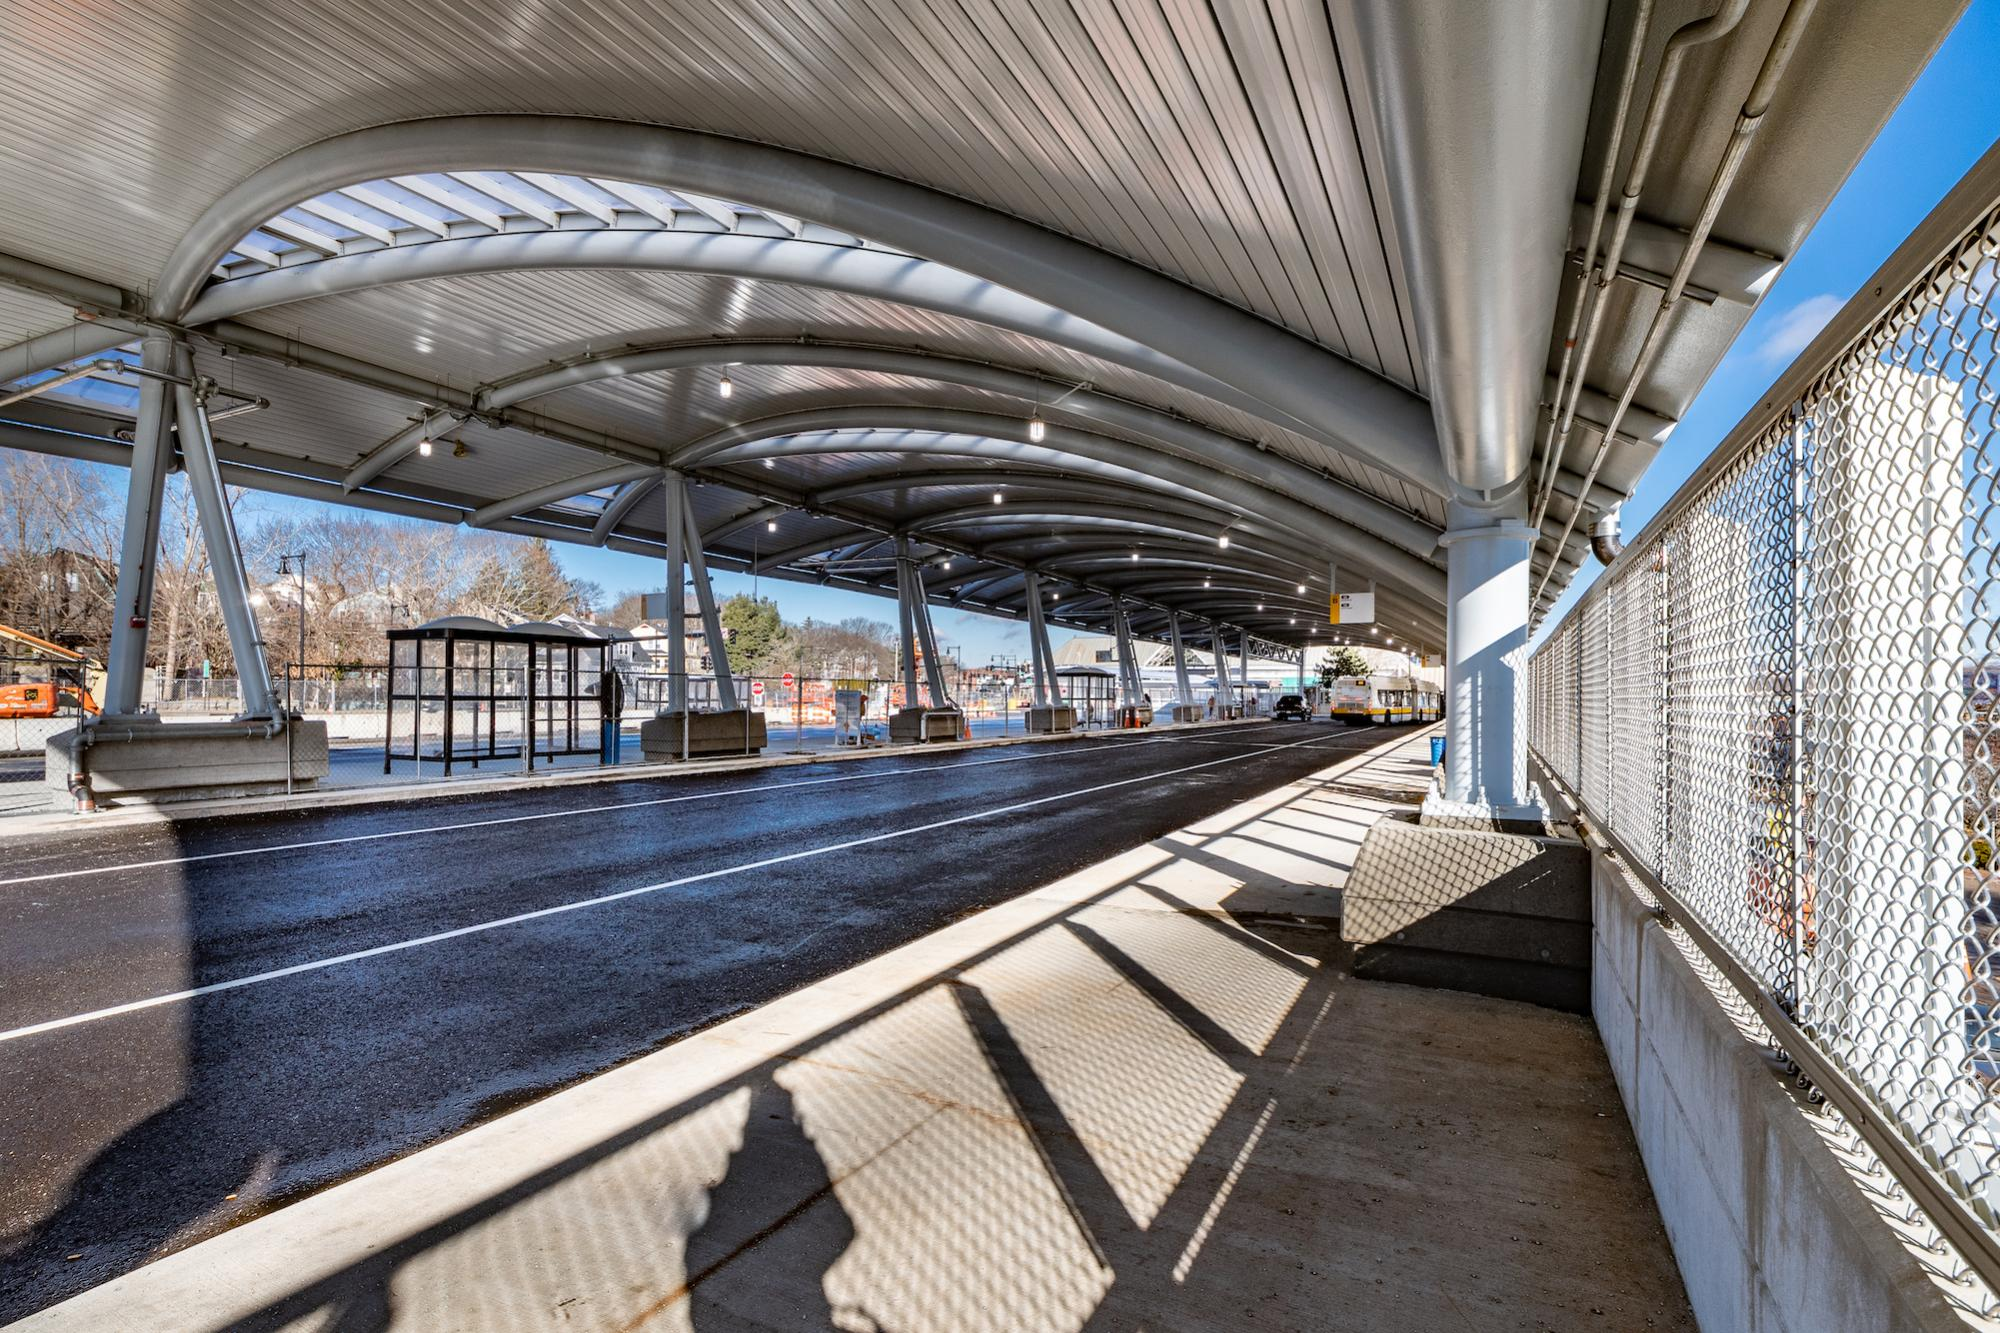 Under the new upper busway canopy at Forest Hills (January 4, 2019)